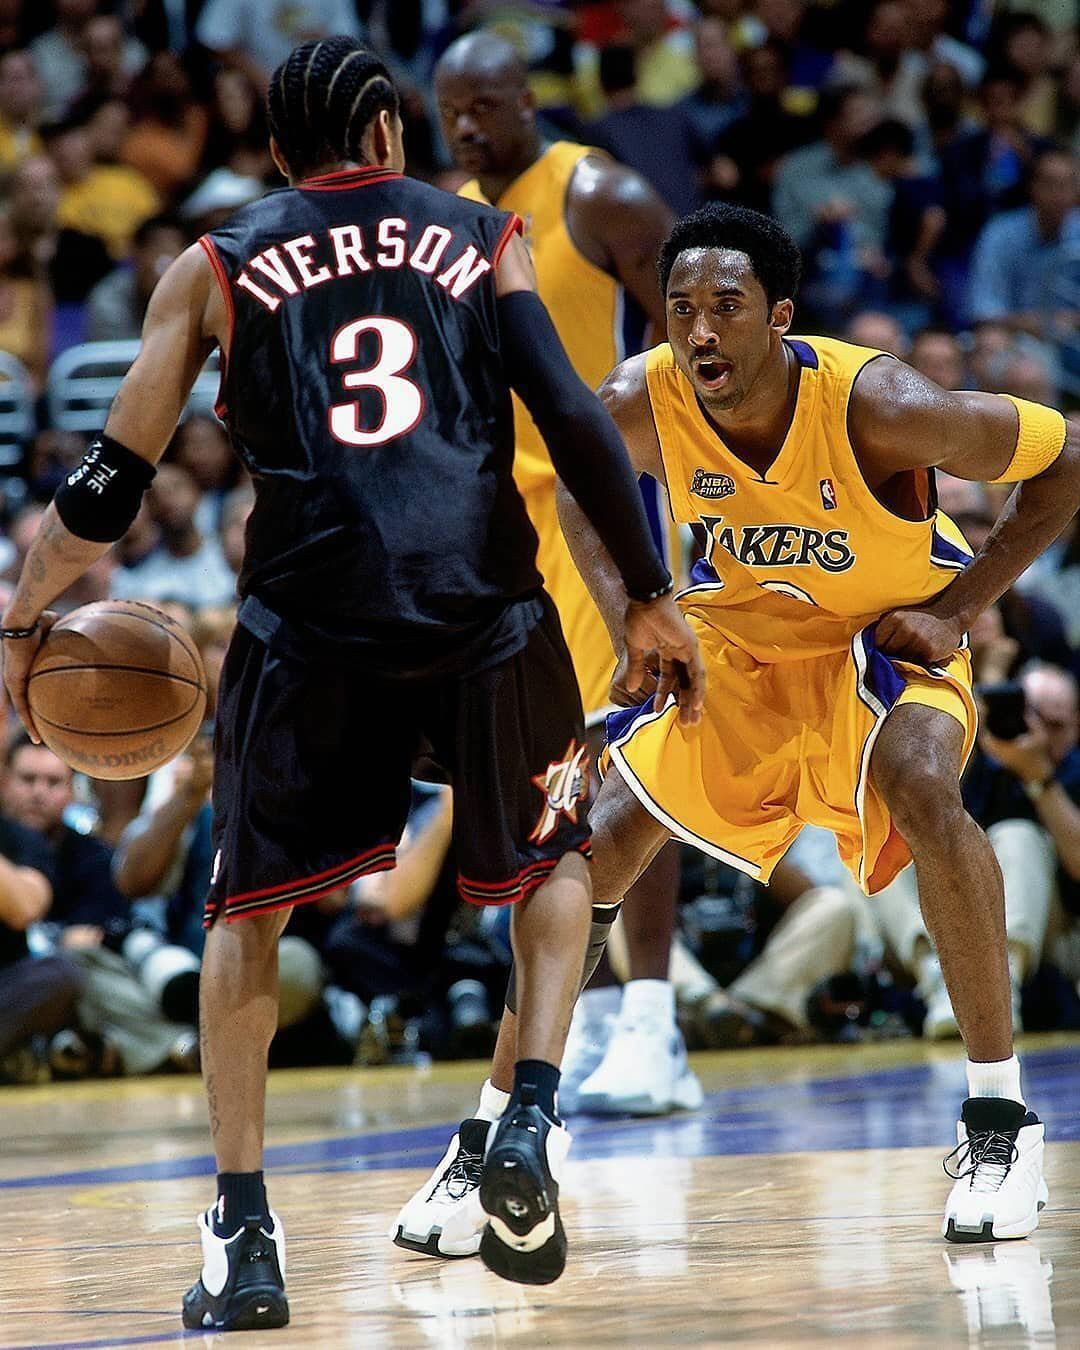 We All Should Be Fortunate That Allen Iverson Wasnt 65 Kobe Bryant Hardwoodheroes Allen Iverson Kobe Bryant Pictures Basketball Star